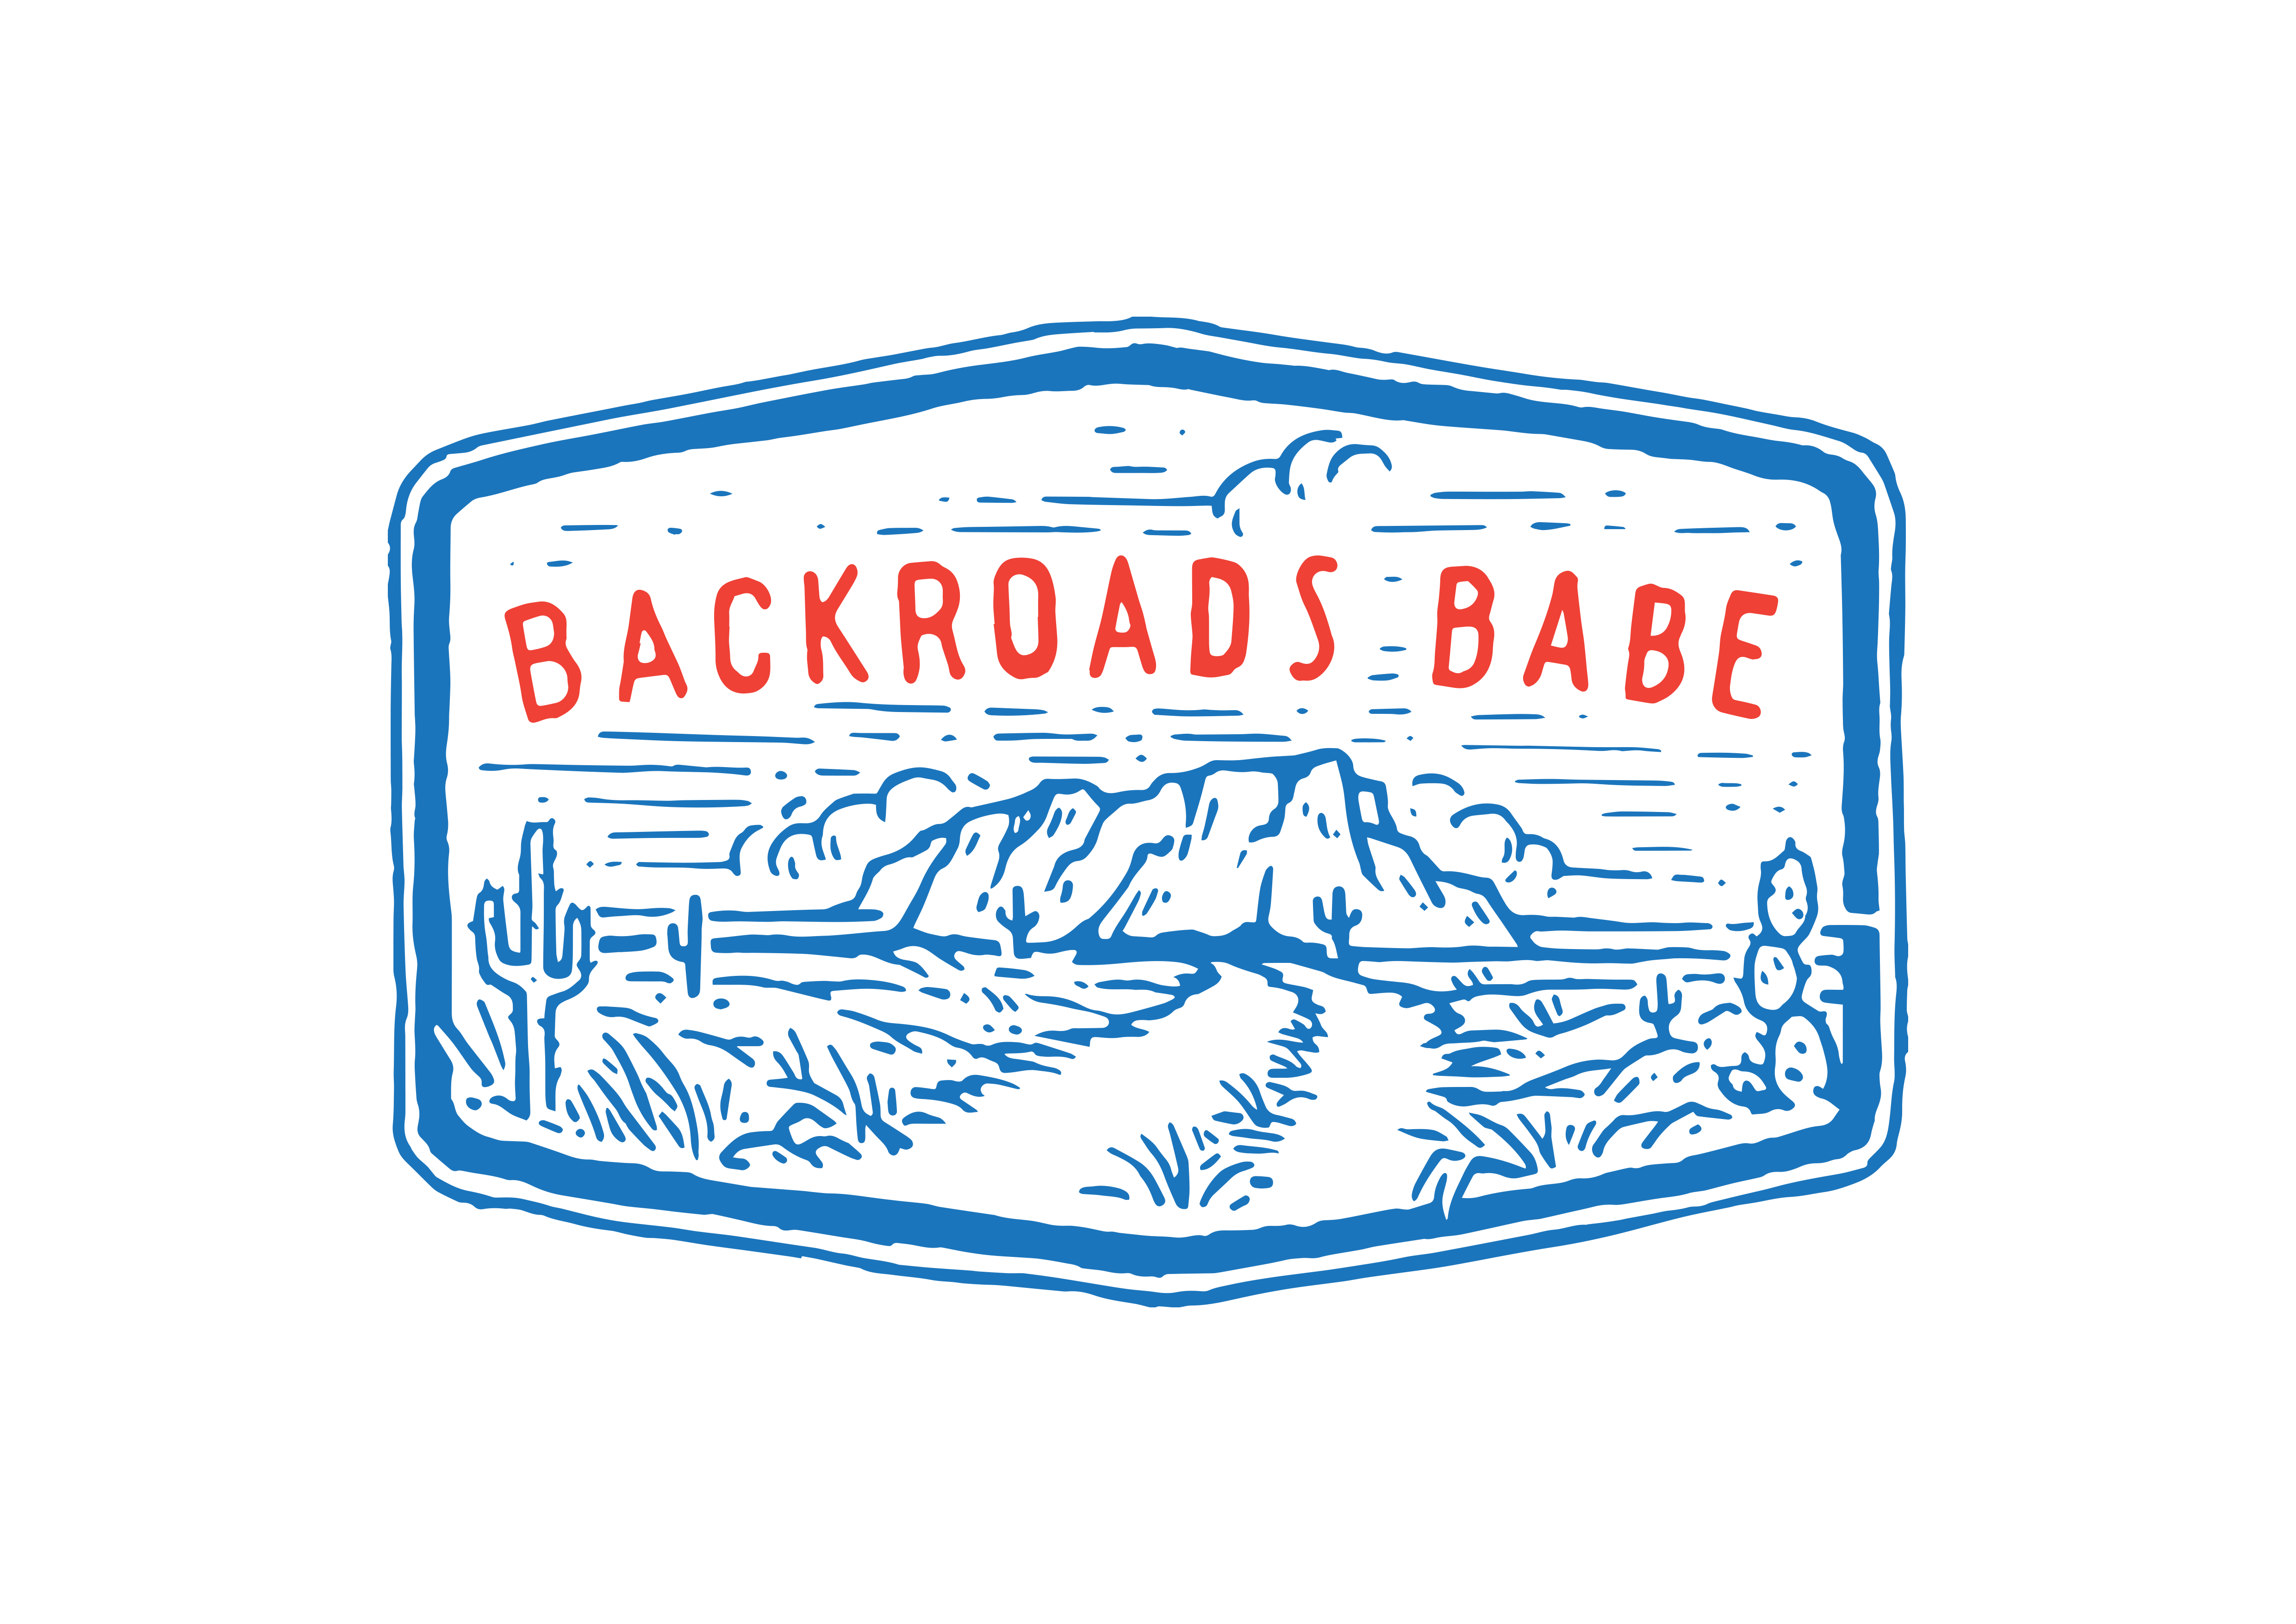 Simple T-Shirt Design - BACKROADS BABE (text) with Country Road